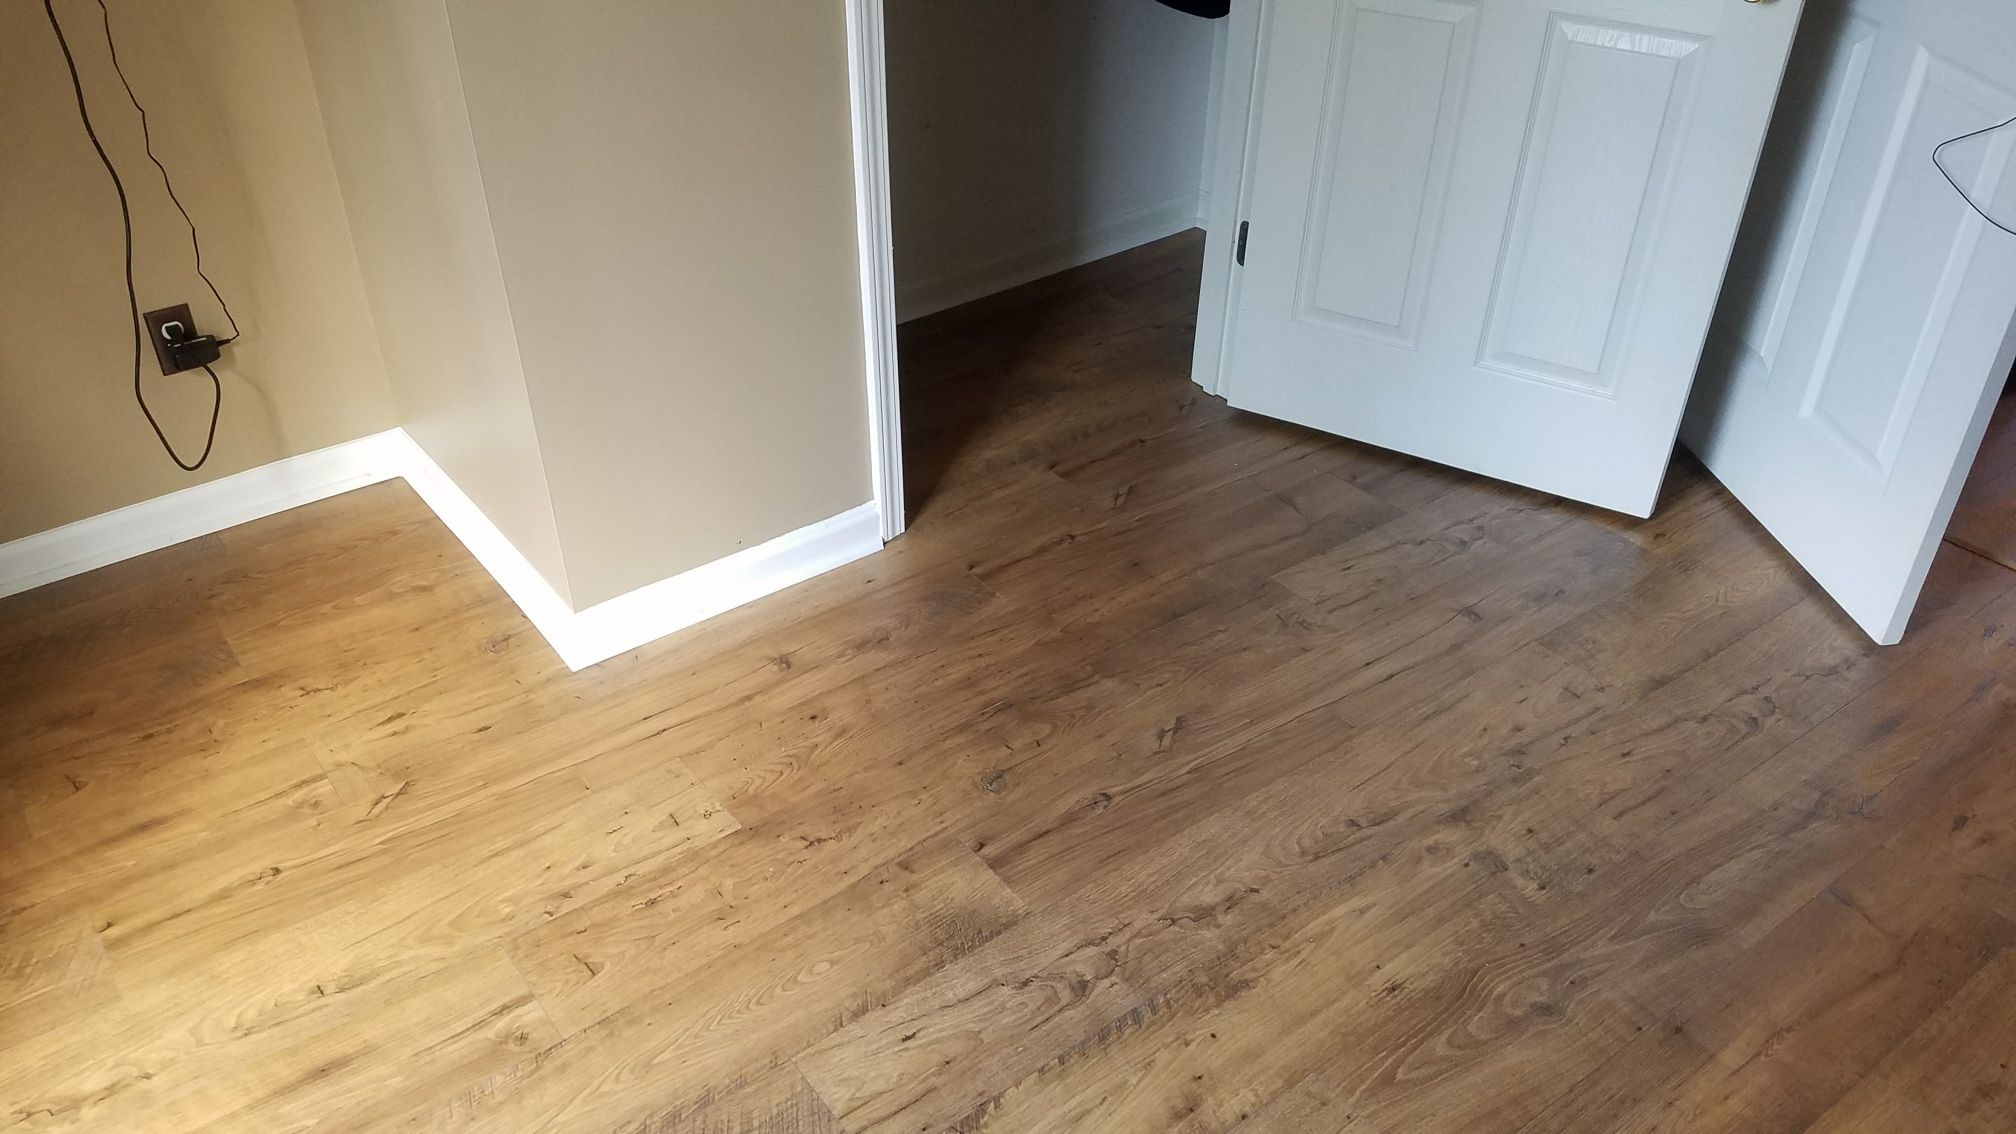 Spike Huber Flooring And Construction Hardwood Laminate Tile Stone Memphis Tennessee Install Living Room Flooring Floor Installation Flooring Contractor